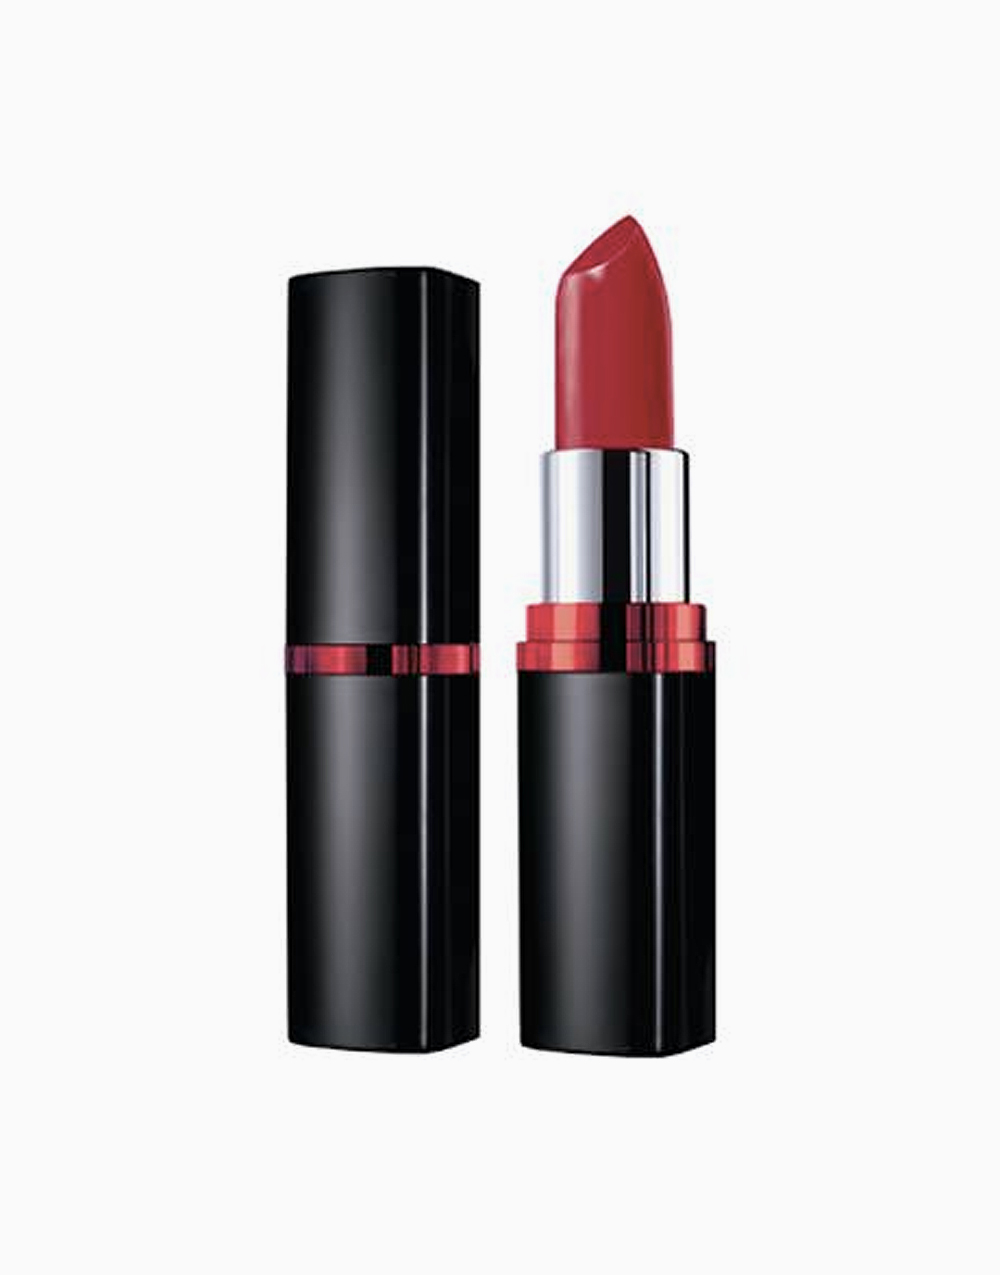 ColorSensational Vivid Creamy Matte Lipstick by Maybelline | Big Apple Red